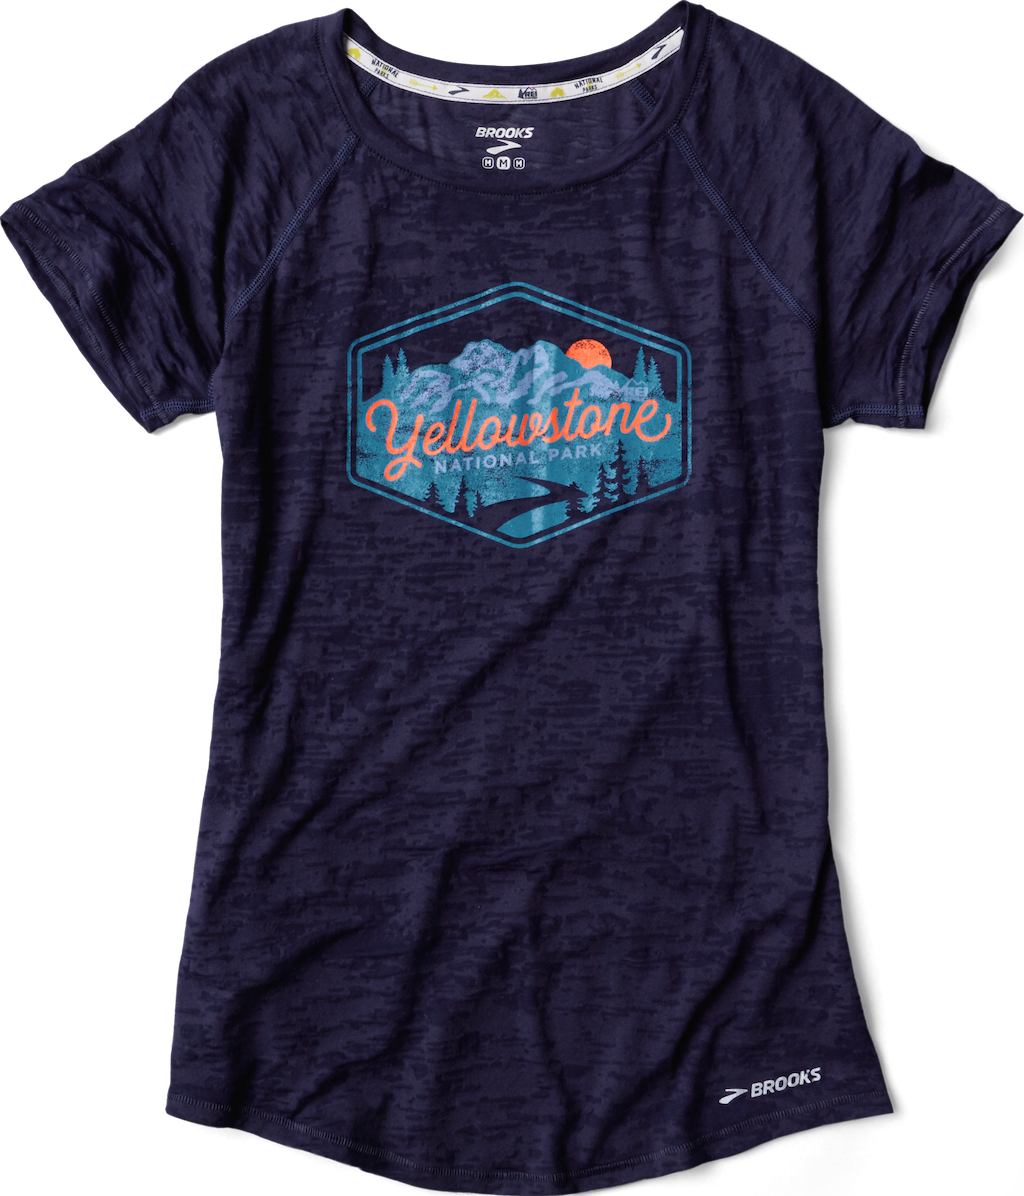 Brooks Yellowstone National Park Women's T-Shirt